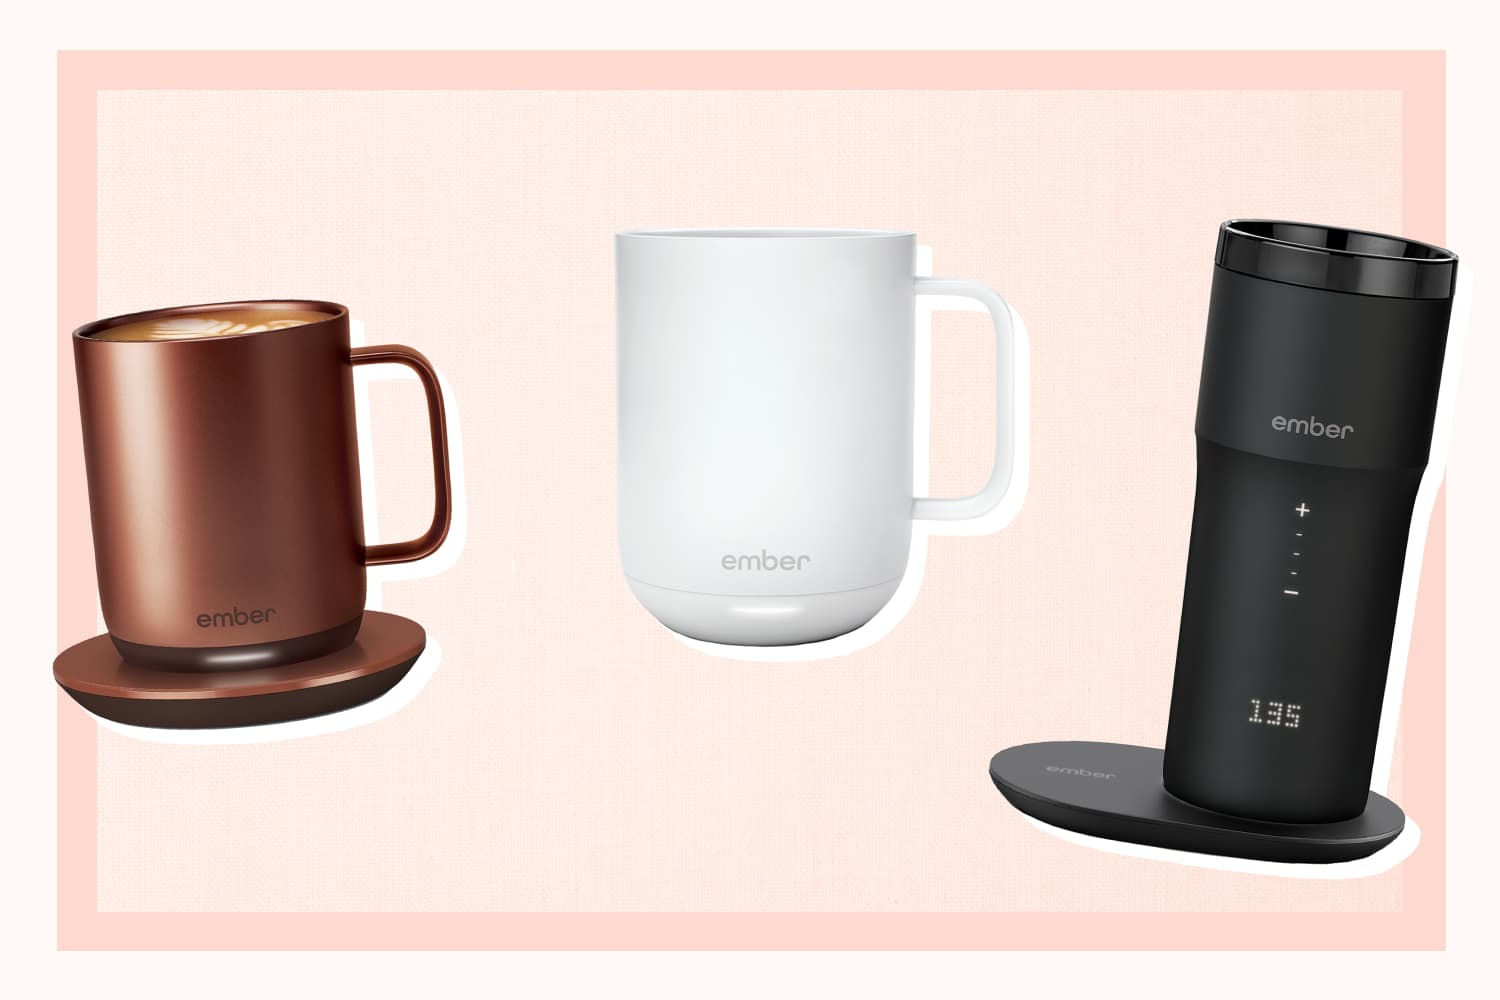 These Ember Mugs Are New And Improved